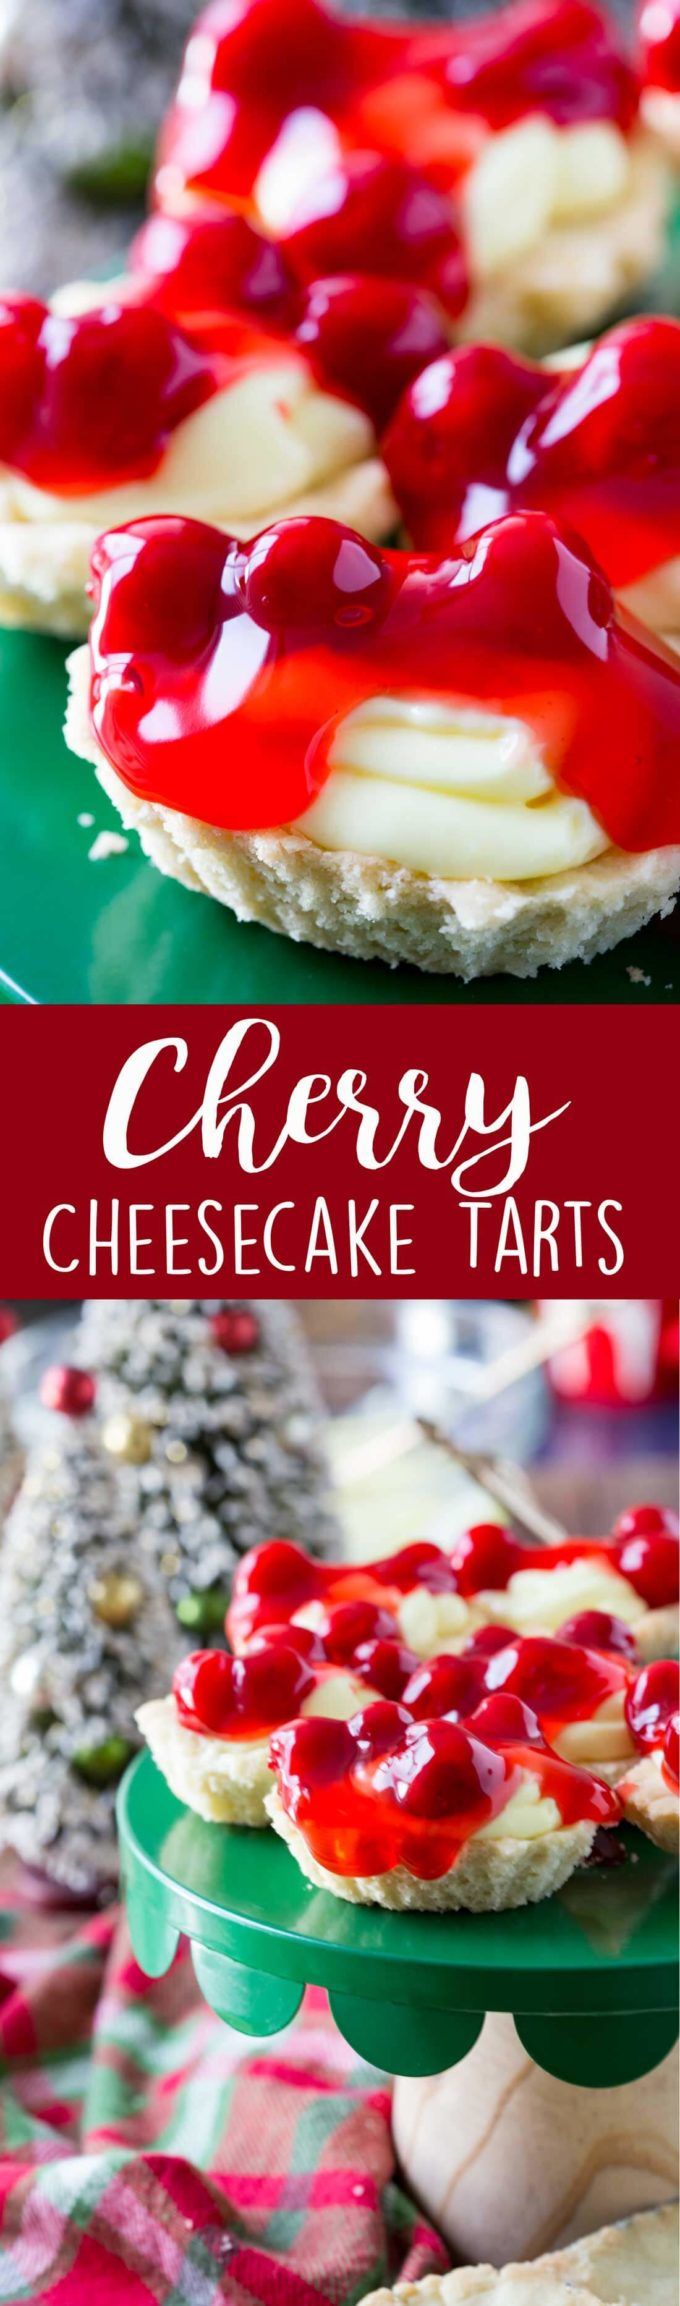 Cherry Cheesecake Butter Tarts are an easy and impressive dessert